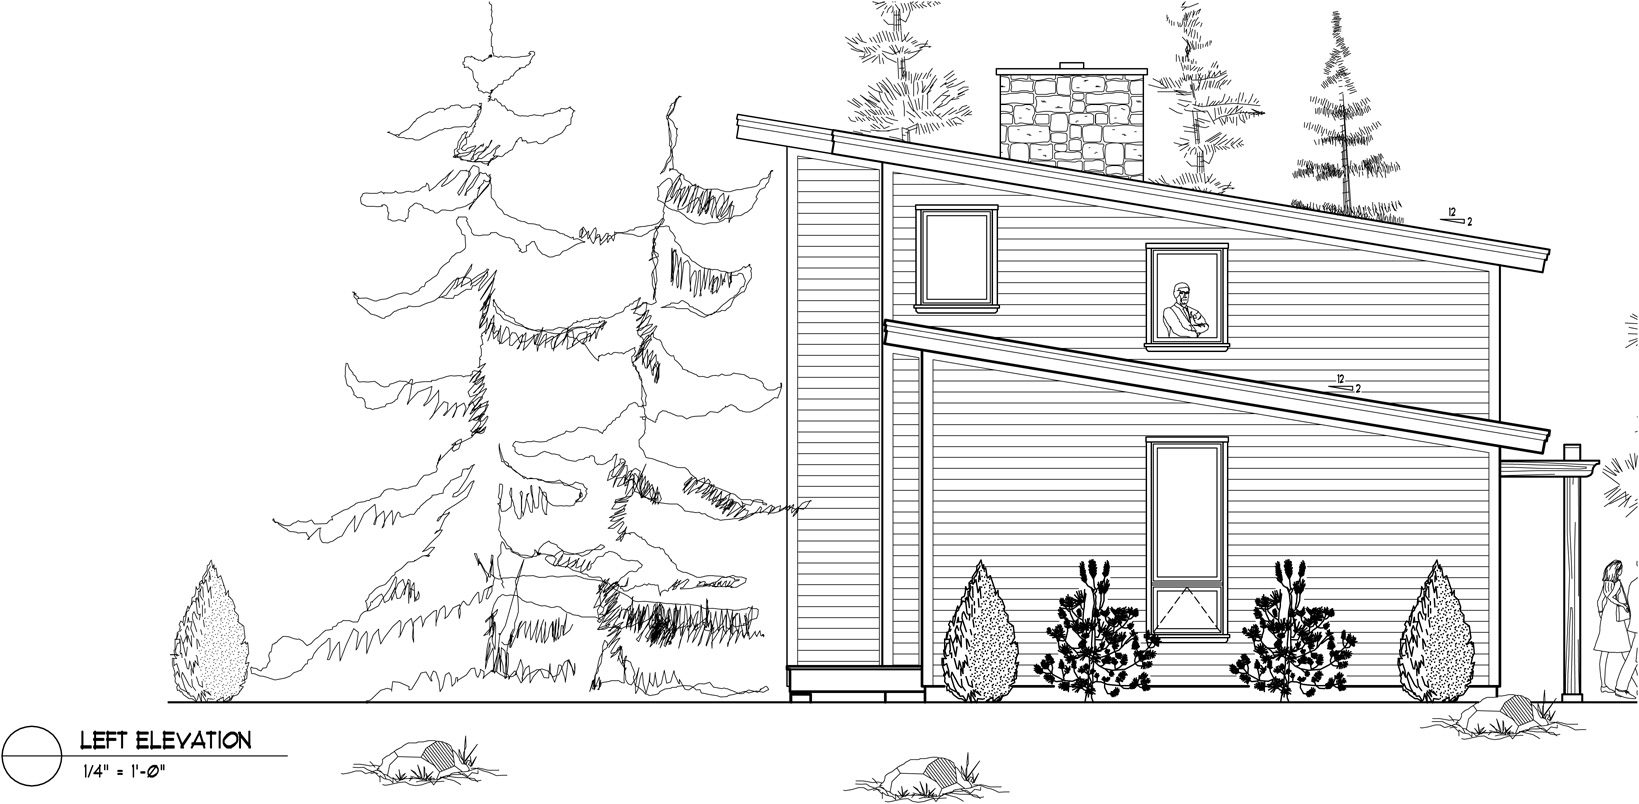 Normerica Timber Frame, House Plan, The Kershaw 3586, Left Elevation